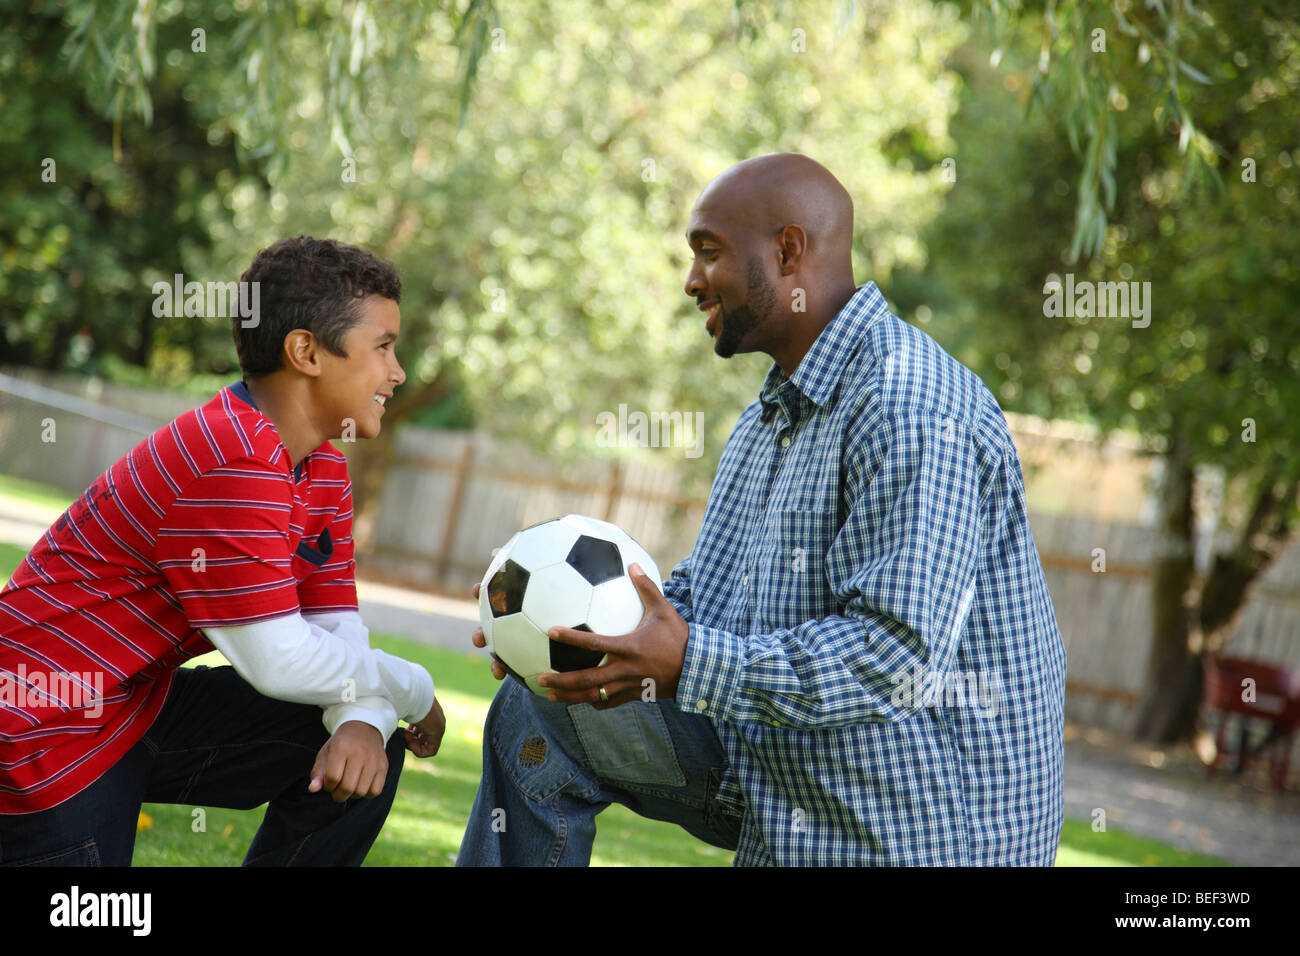 Father and son with soccer ball - Stock Image